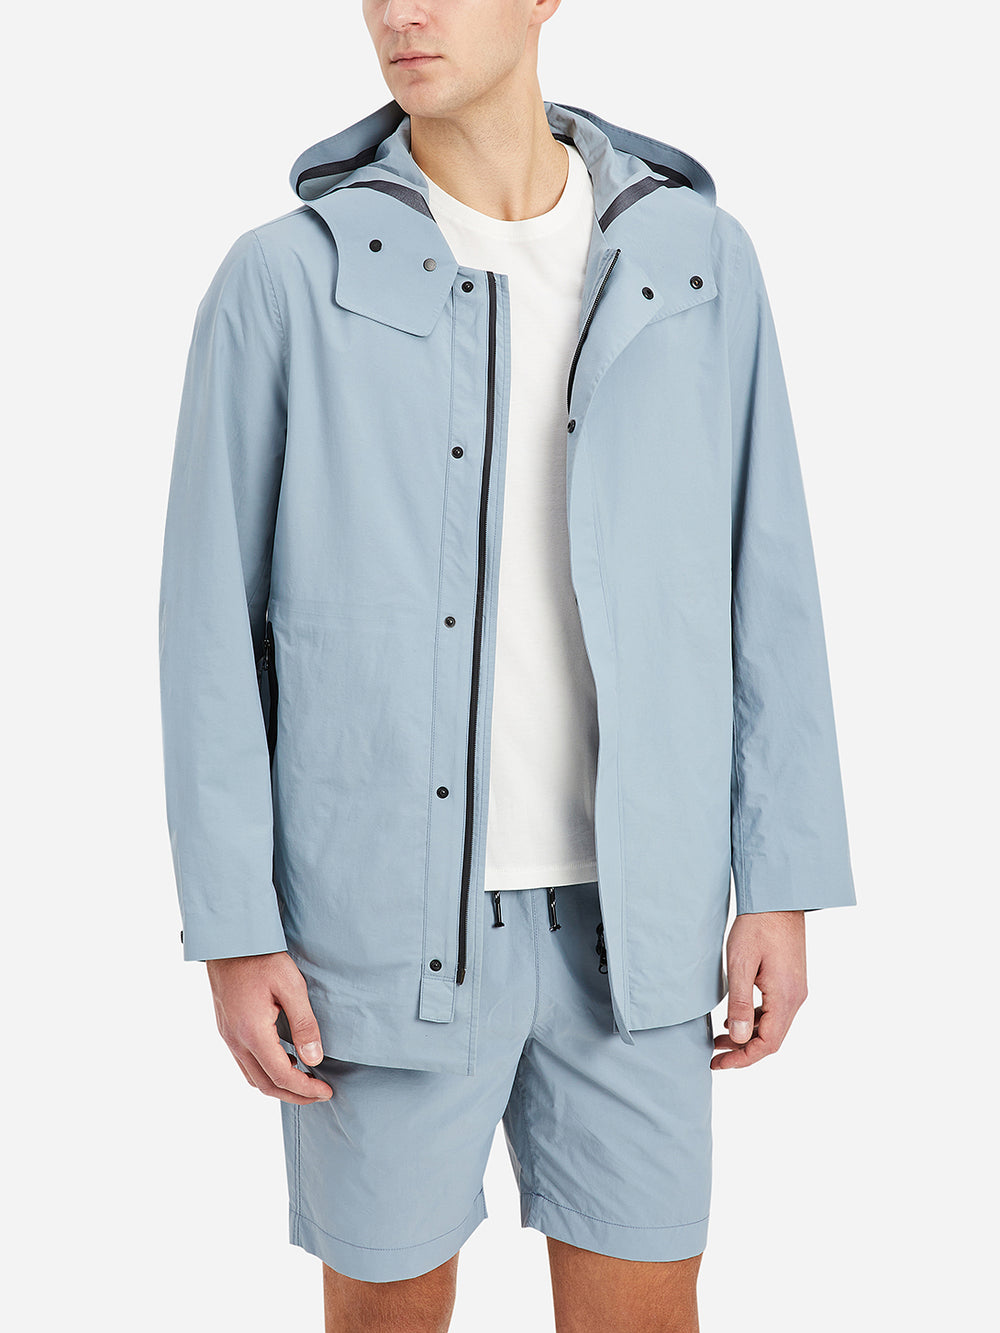 Blue Dreams Reese Parka Men's nylon coats ONS Clothing